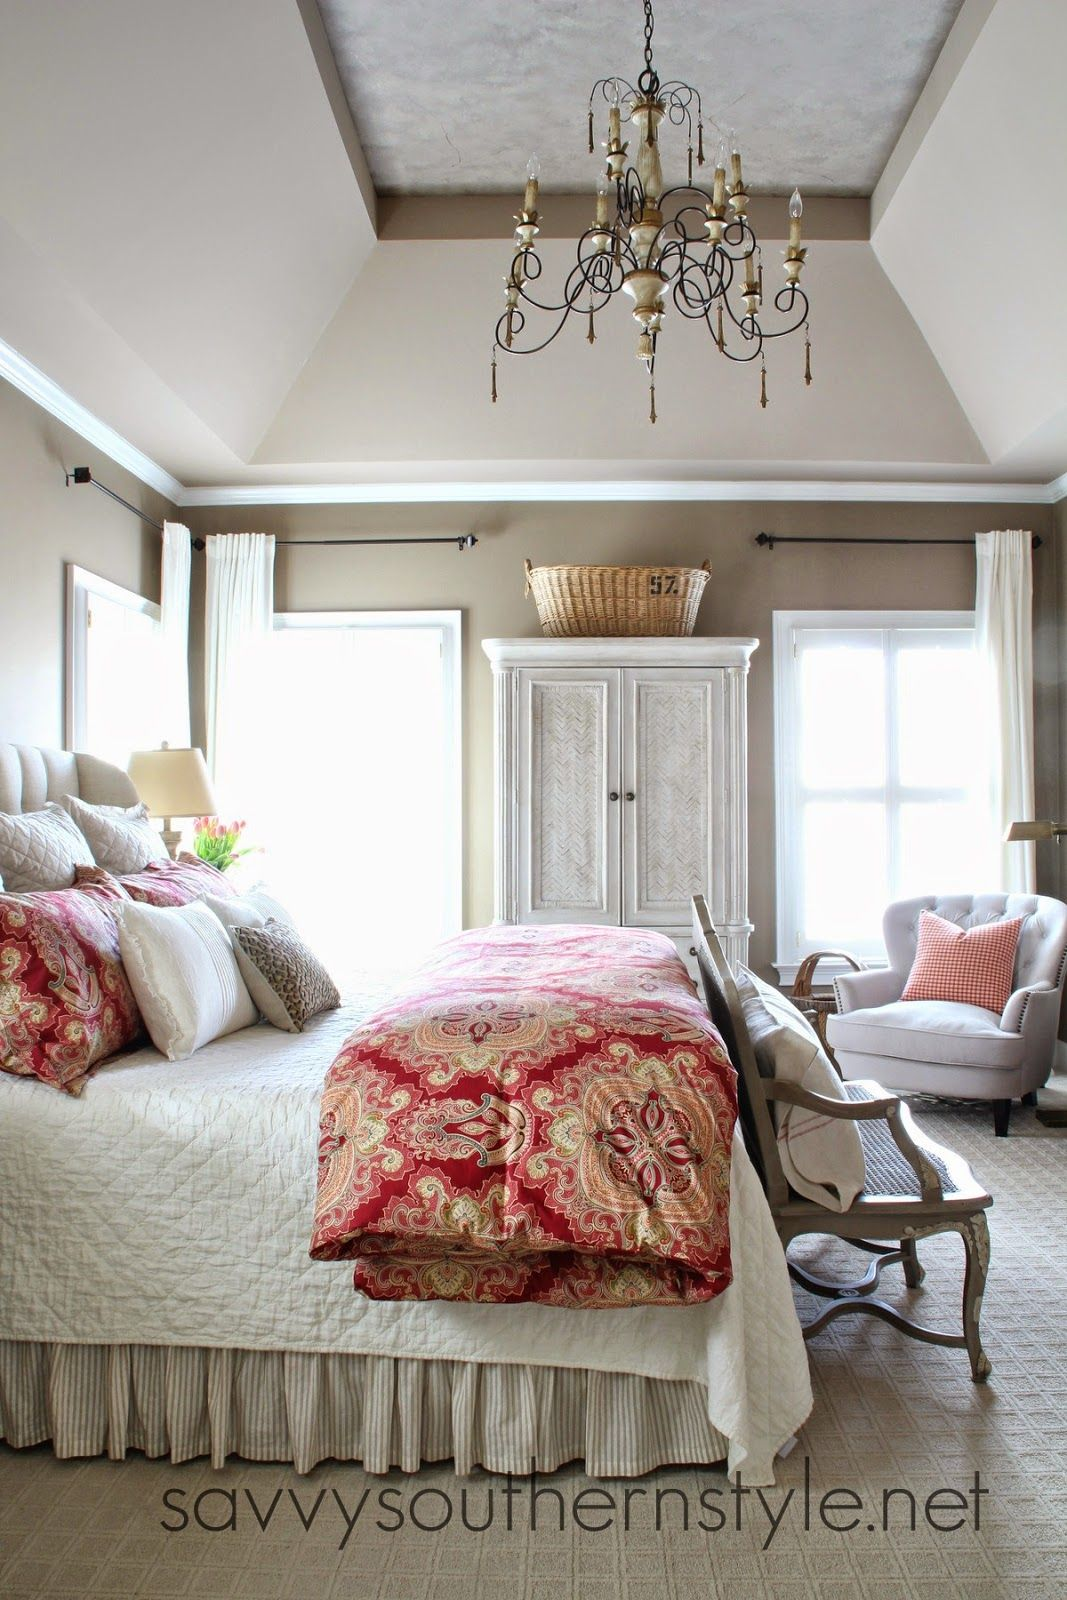 Savvy Southern Style New Color In The Master Bedroom